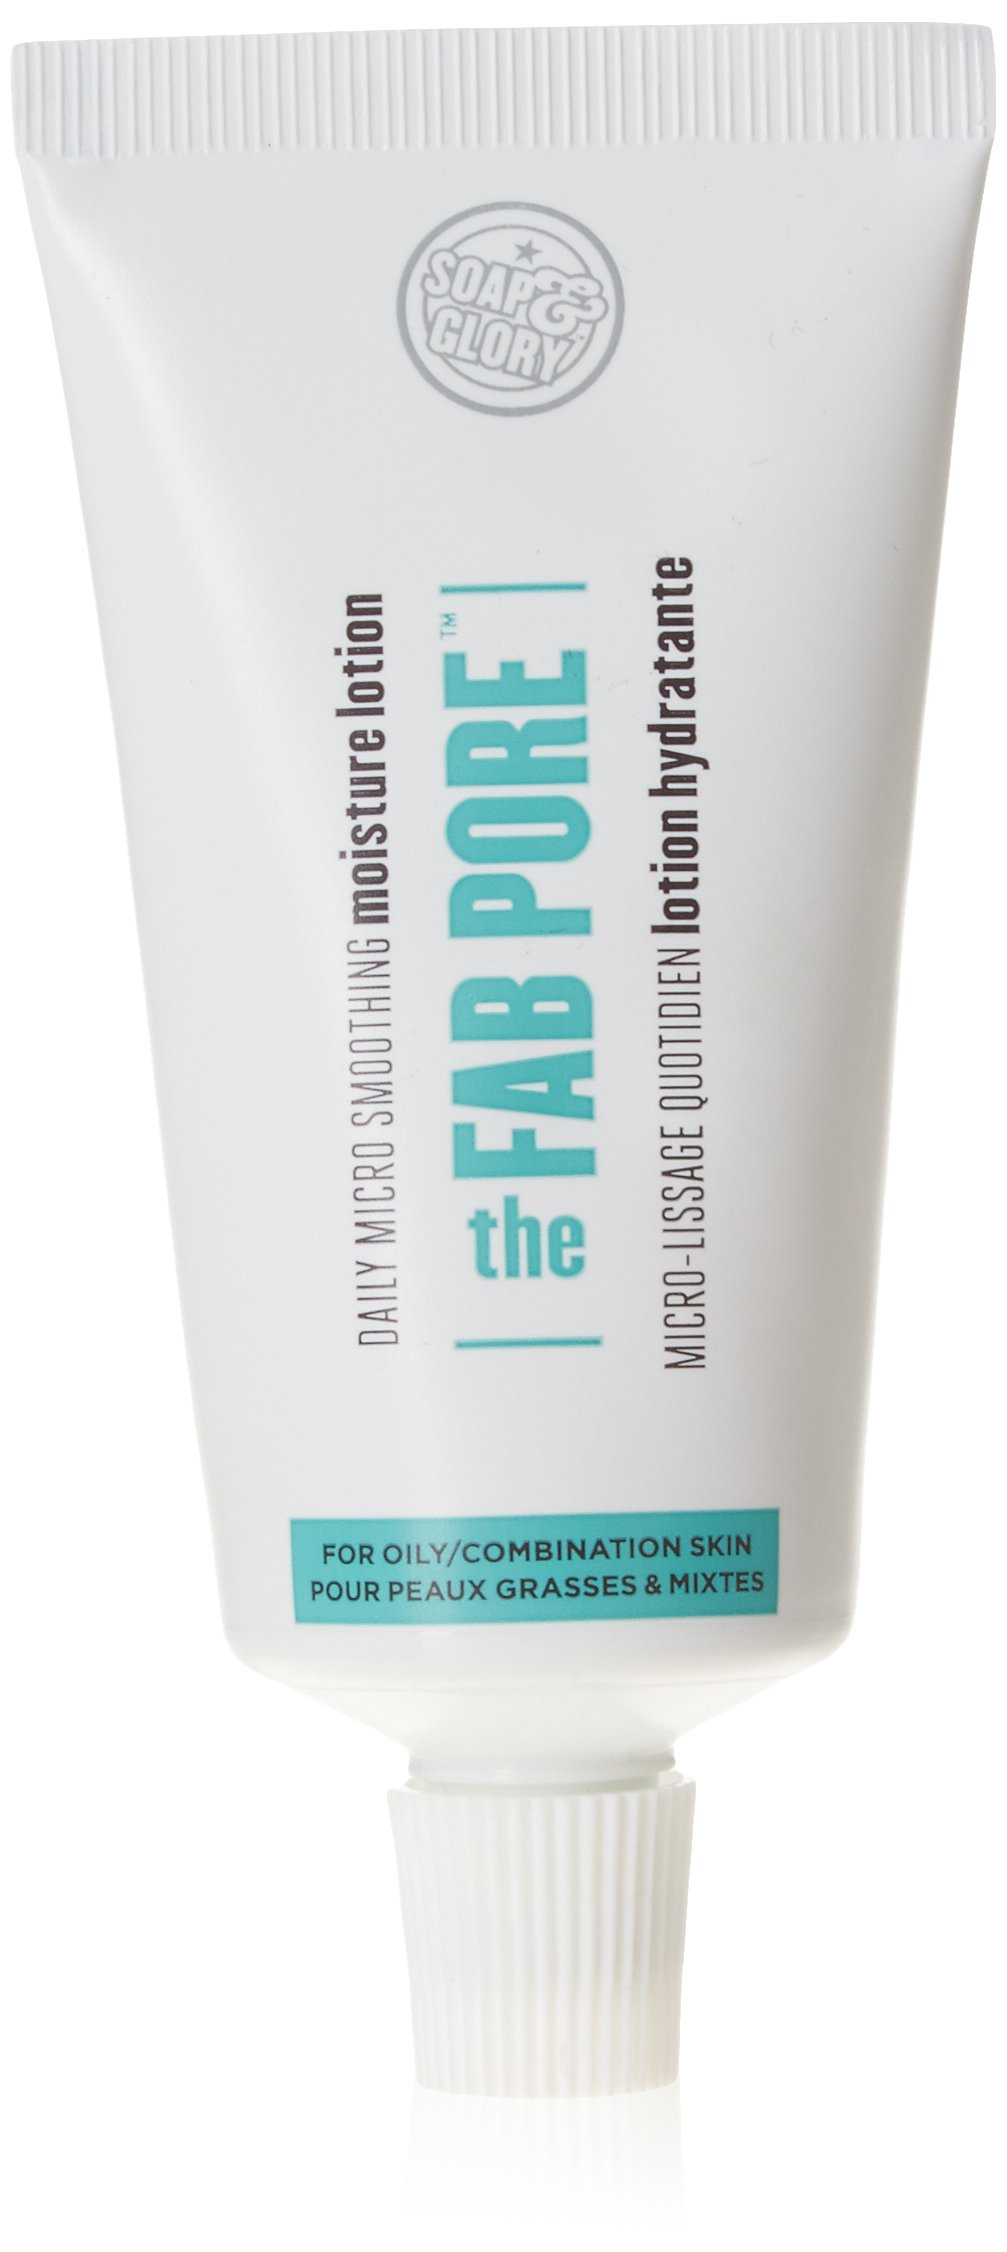 soap and glory fab pore mask instructions